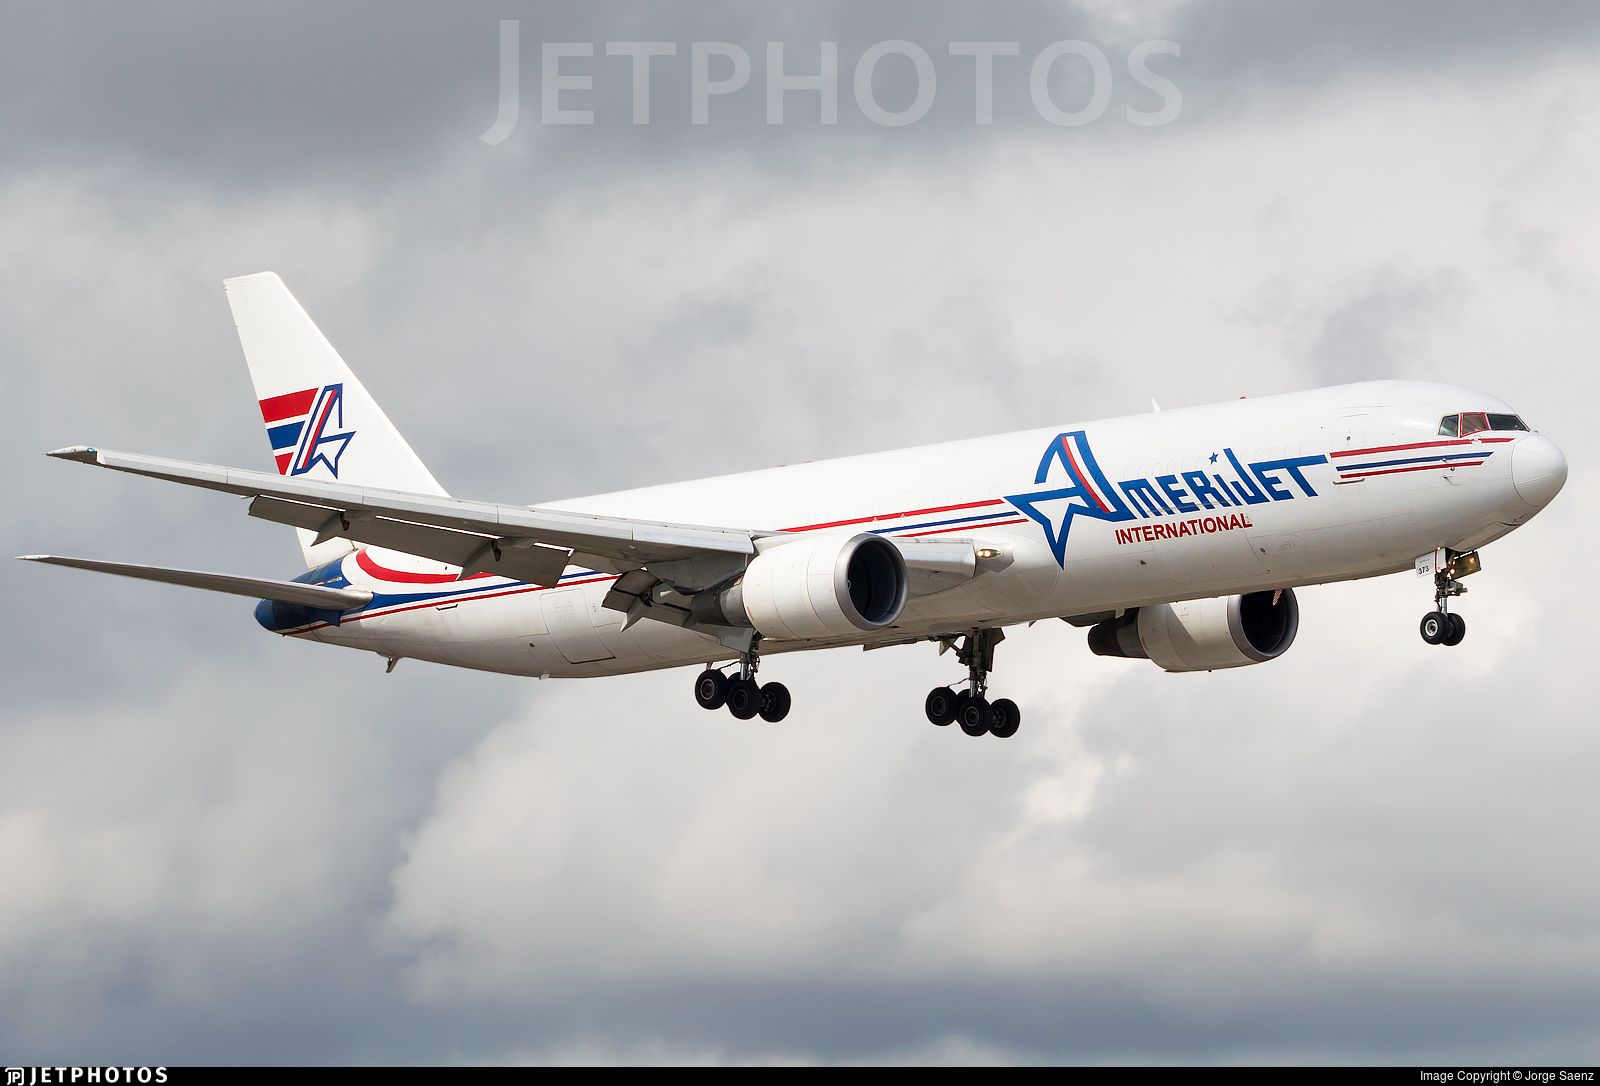 Airline Amerijet International (leased from CAM